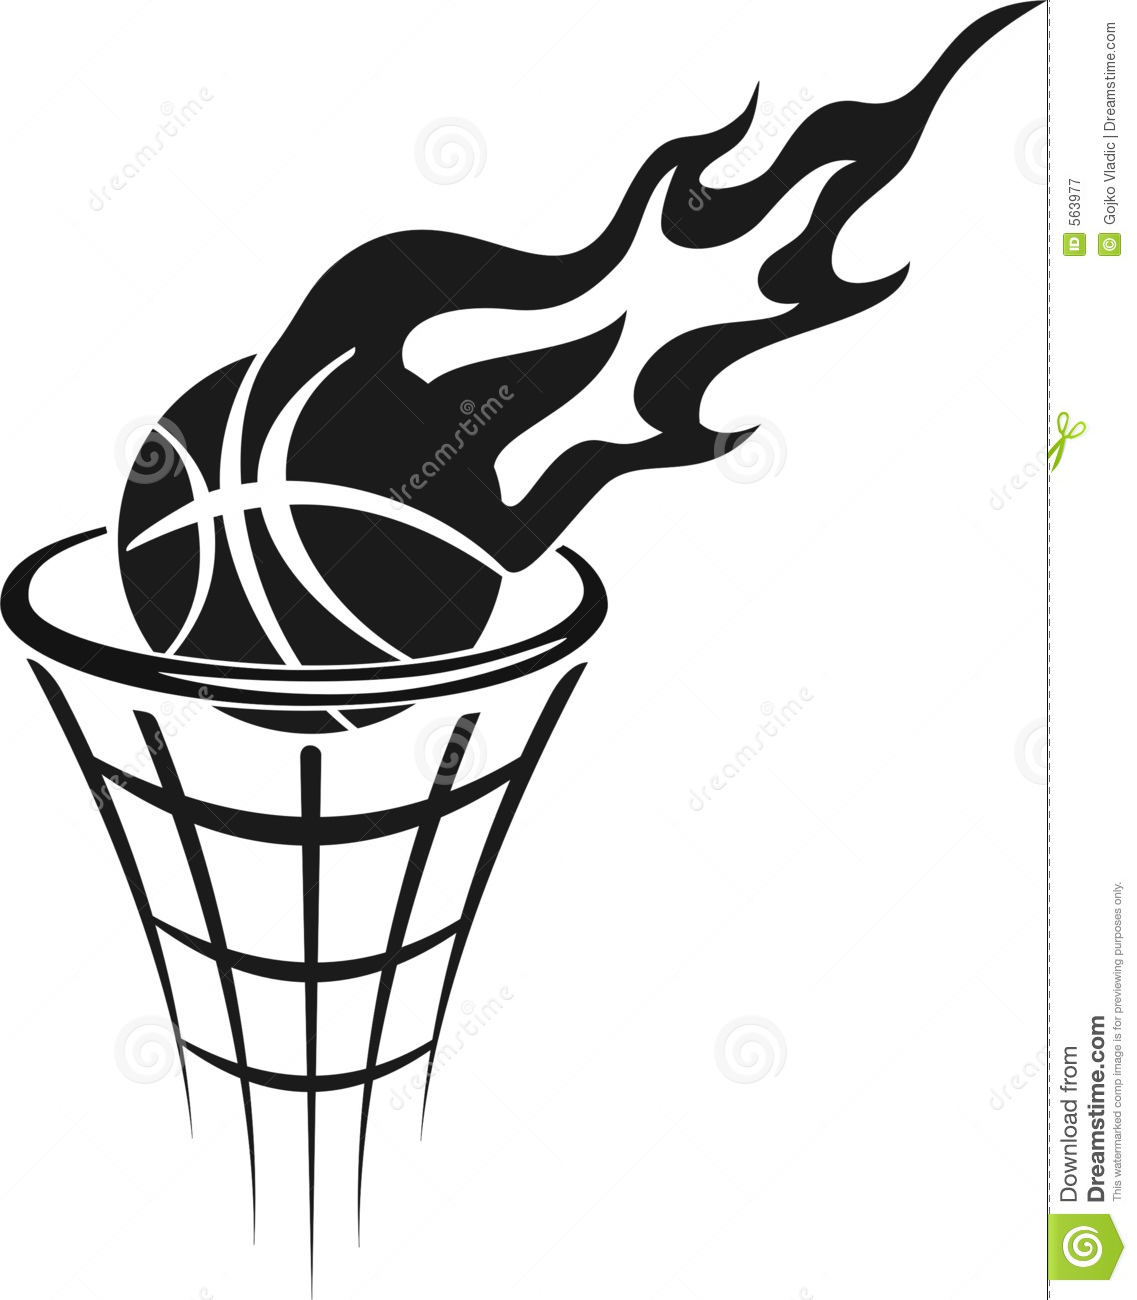 Free Basketball Clipart Black And White